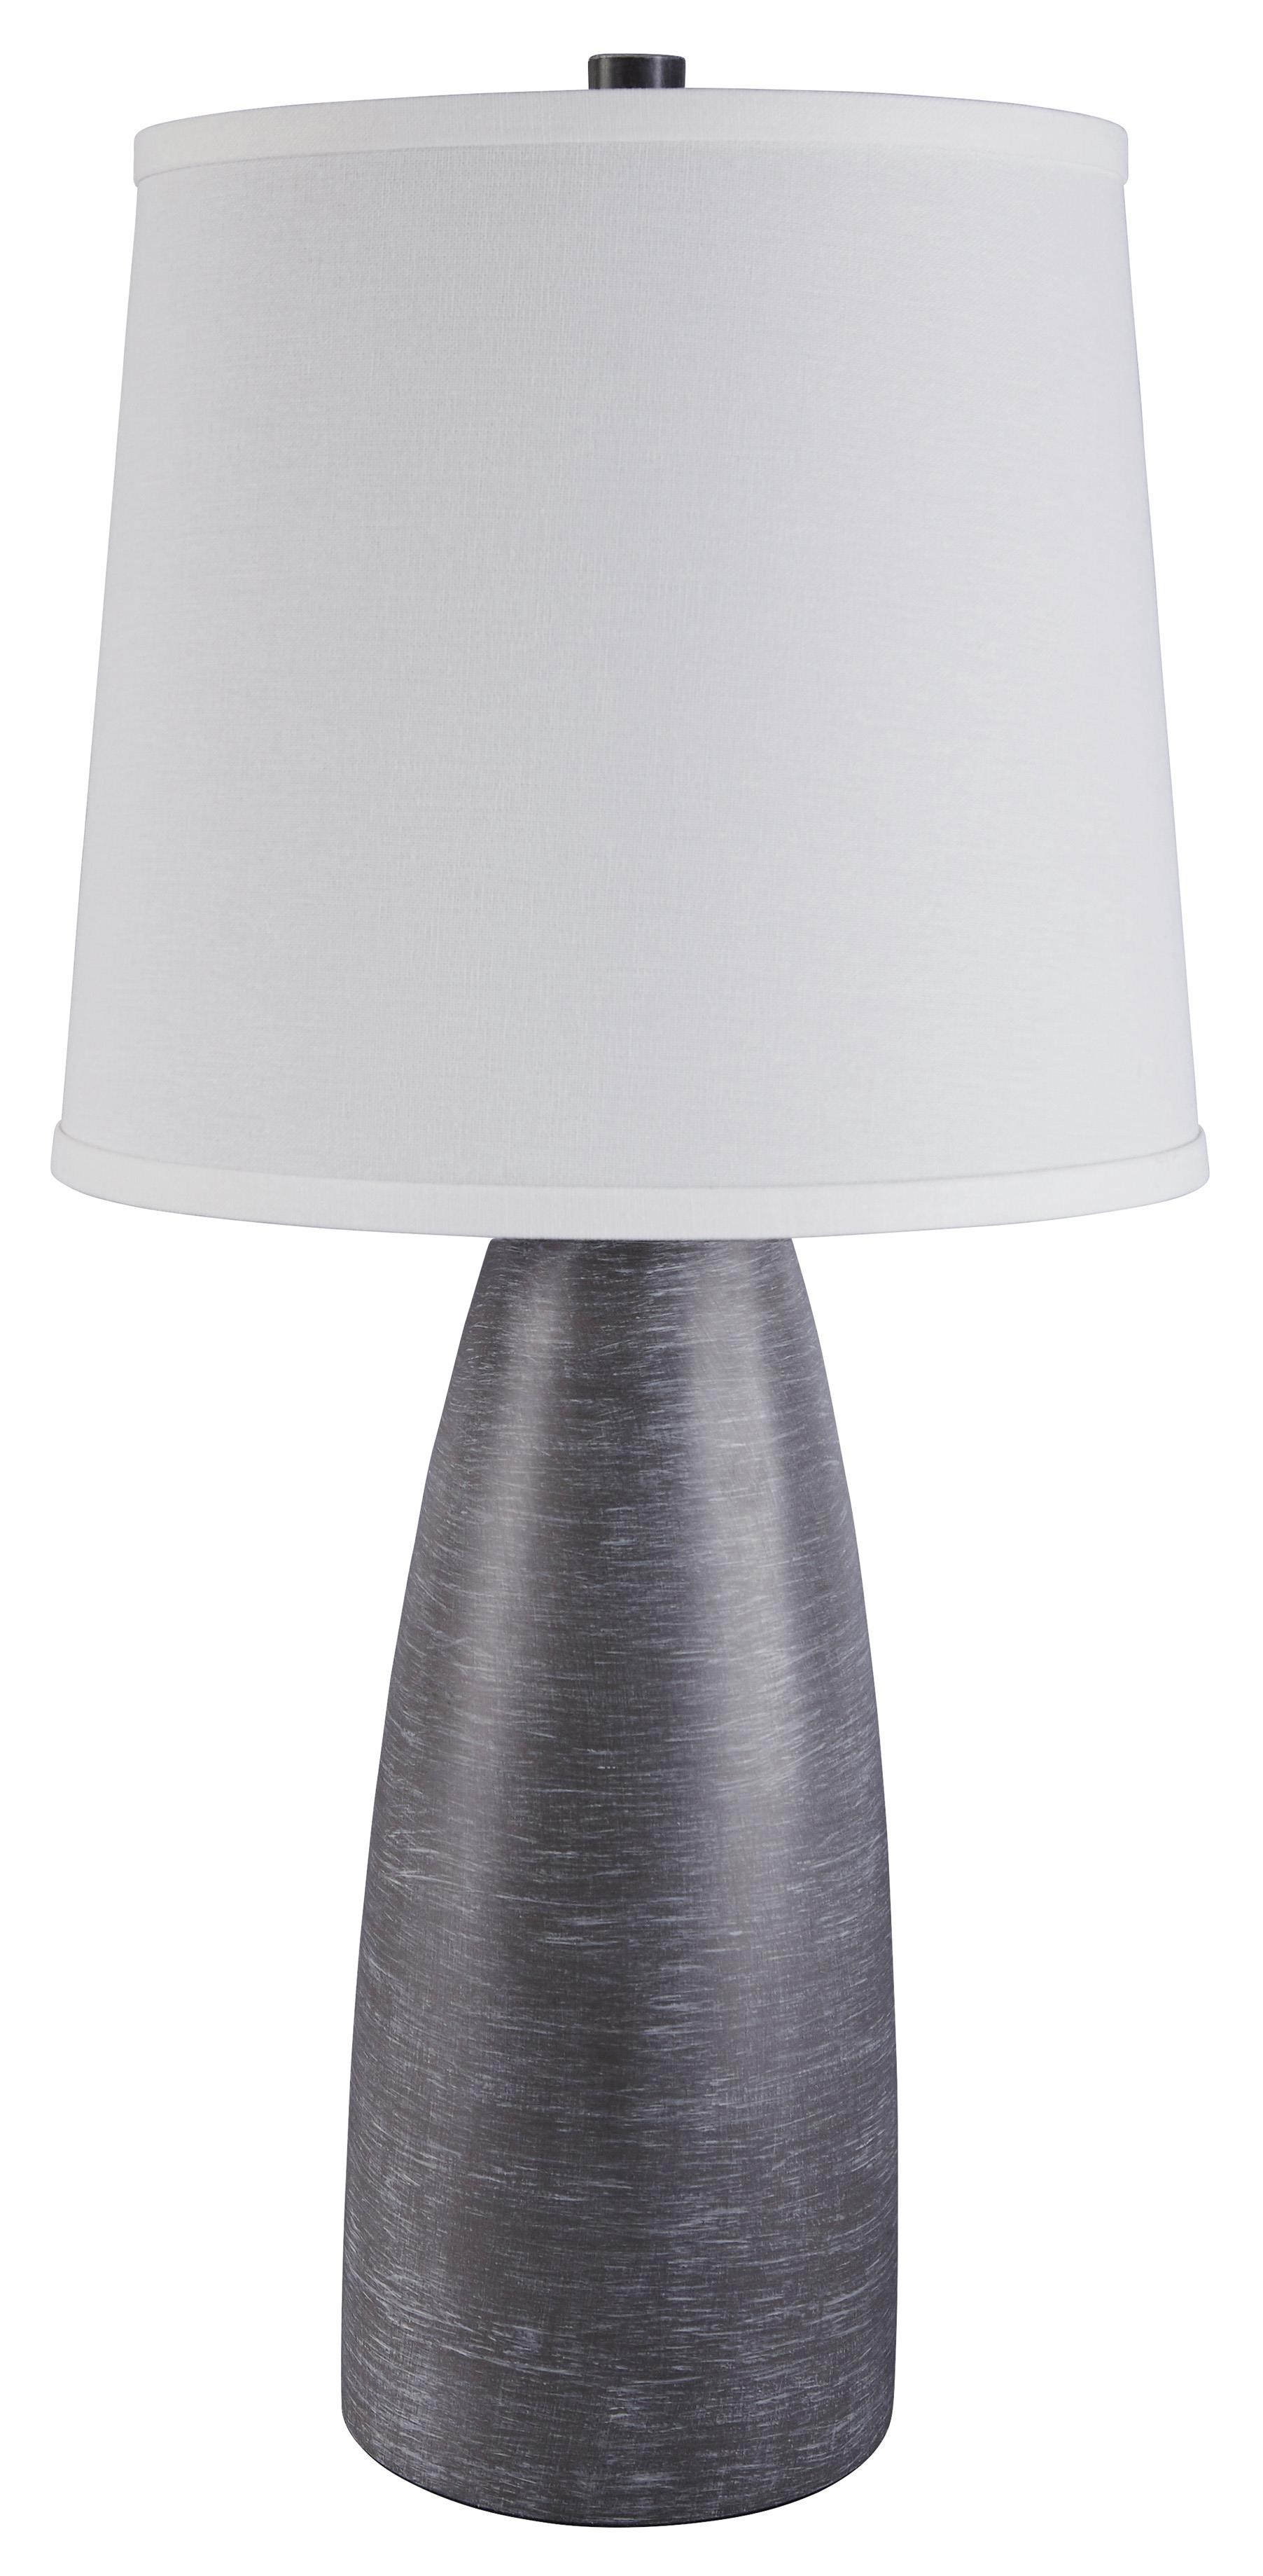 Signature Design by Ashley Lamps - Contemporary Set of 2 Shavontae Poly Table Lamps - Item Number: L243004